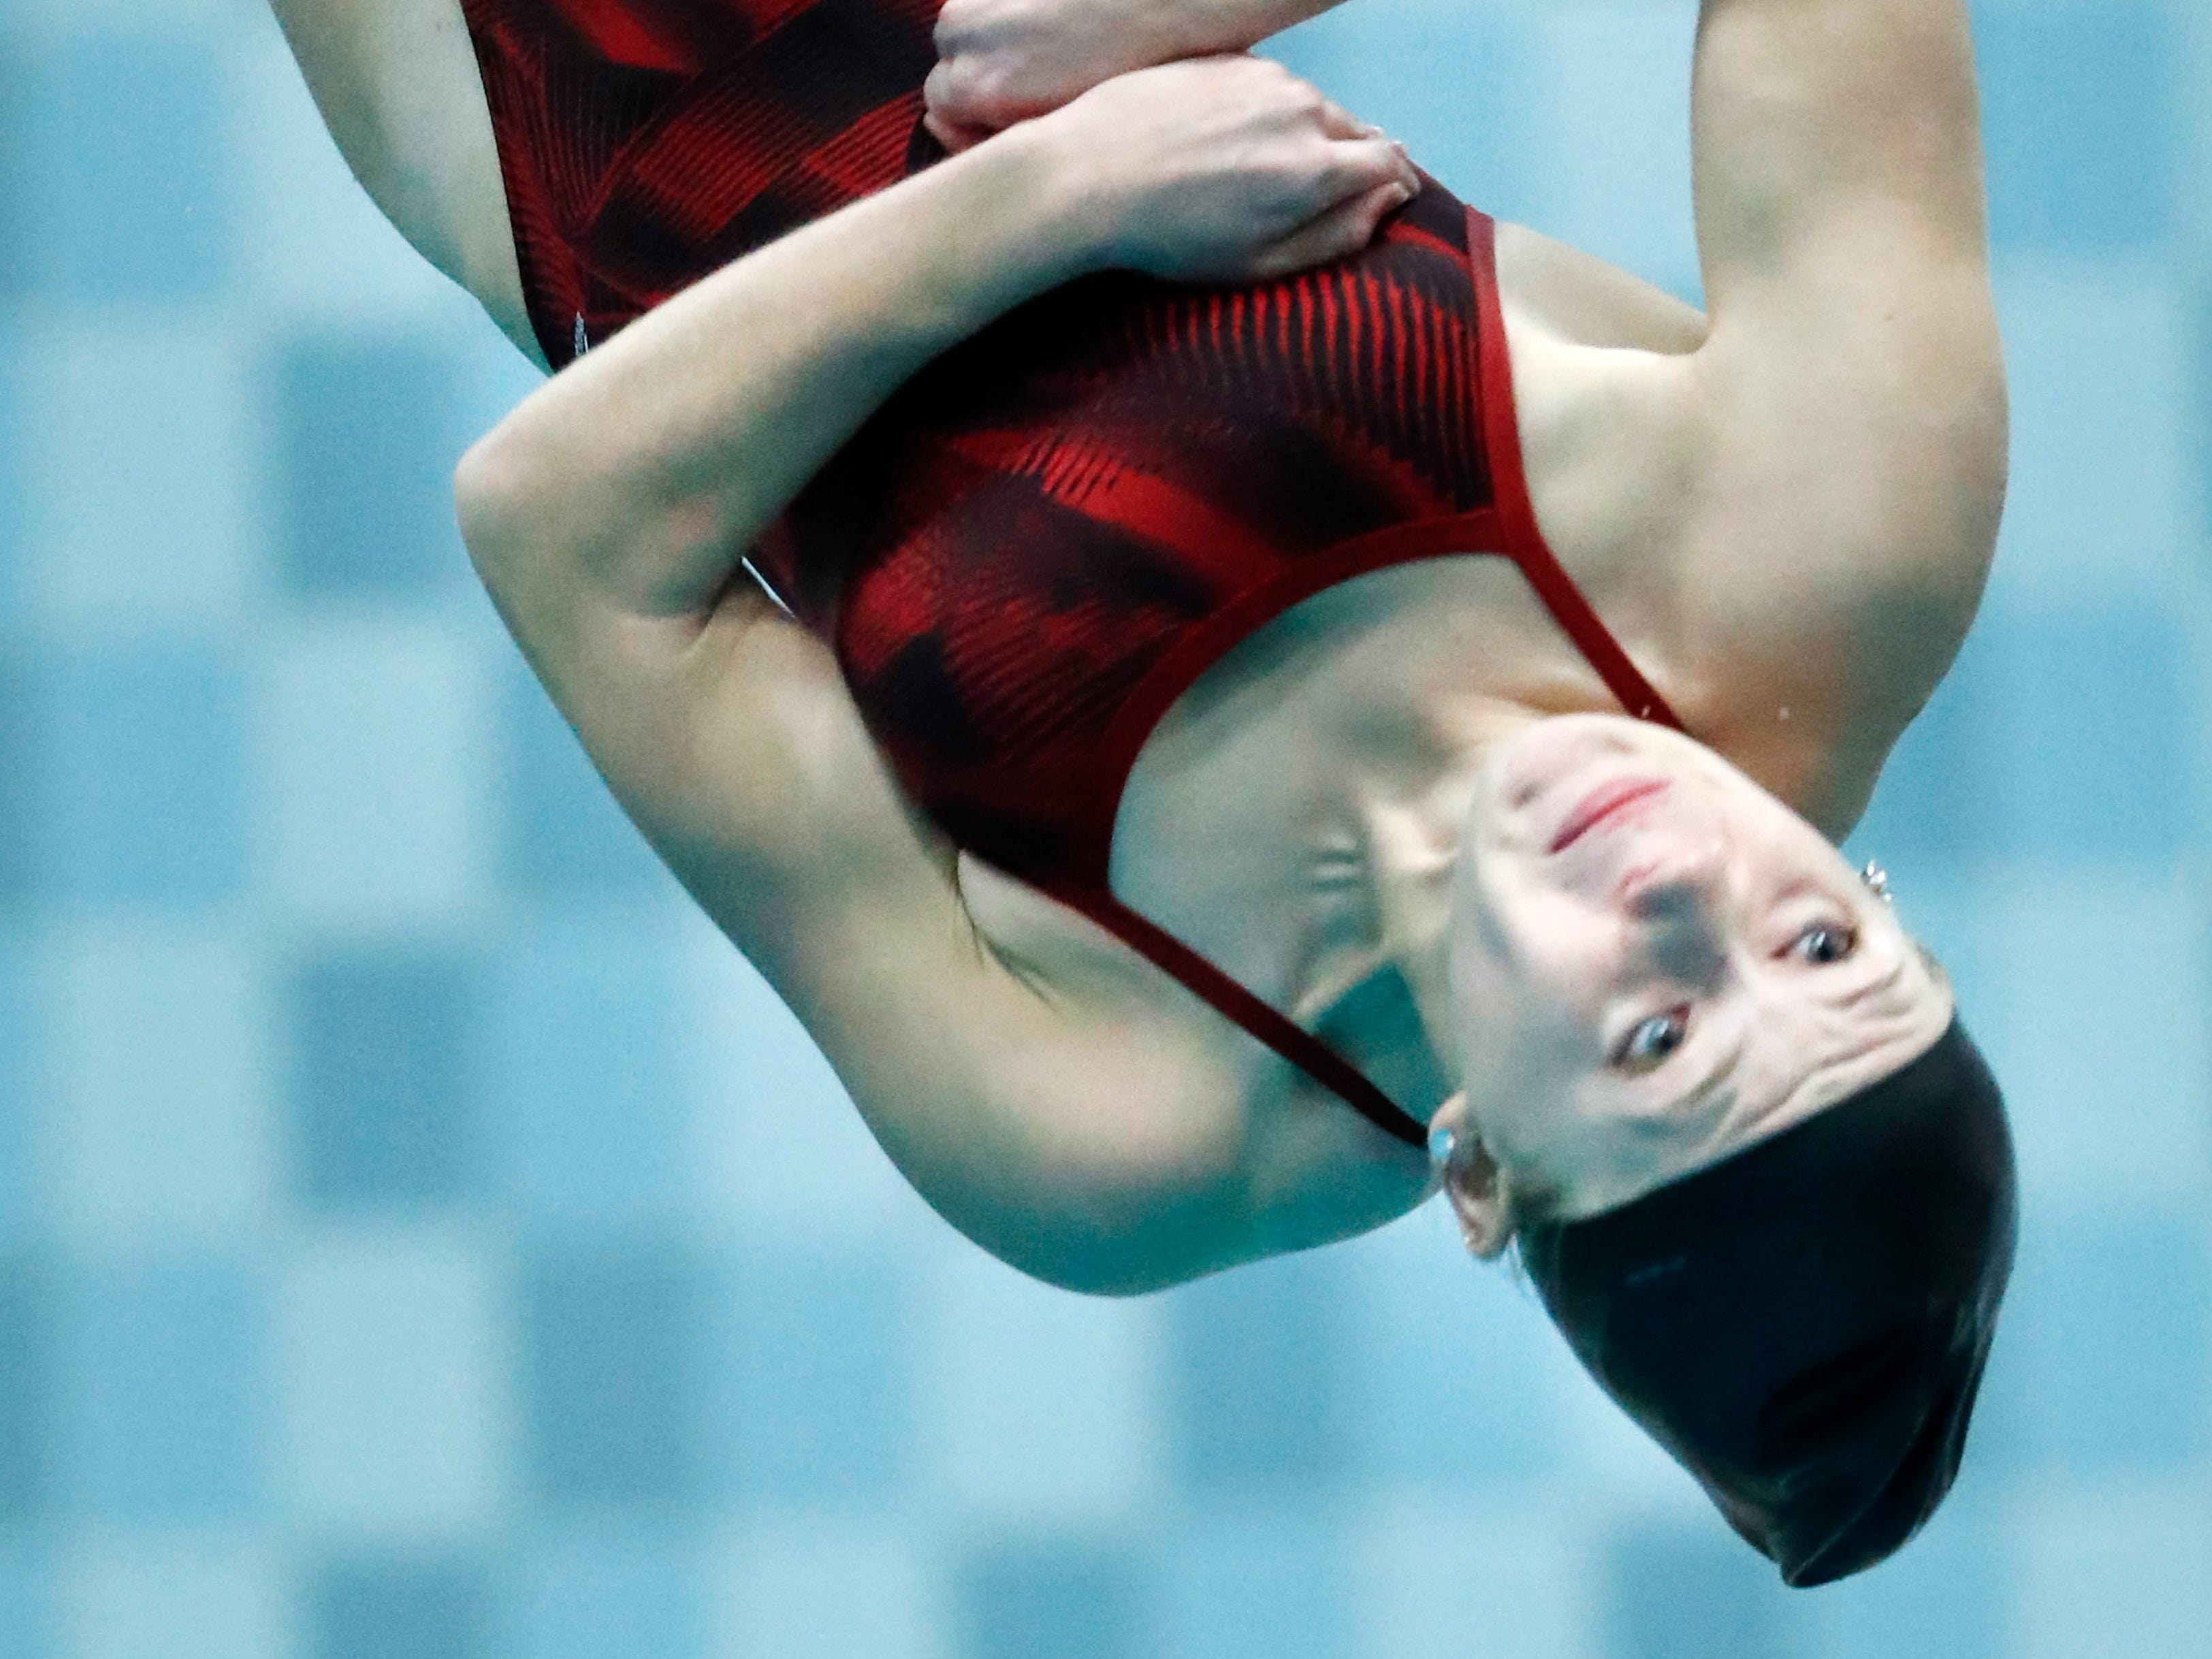 Neenah's Av Osero dives during the WIAA Division 1 State Swimming and Diving meet Saturday, Nov. 10, 2018, at the UW Natatorium in Madison, Wis.